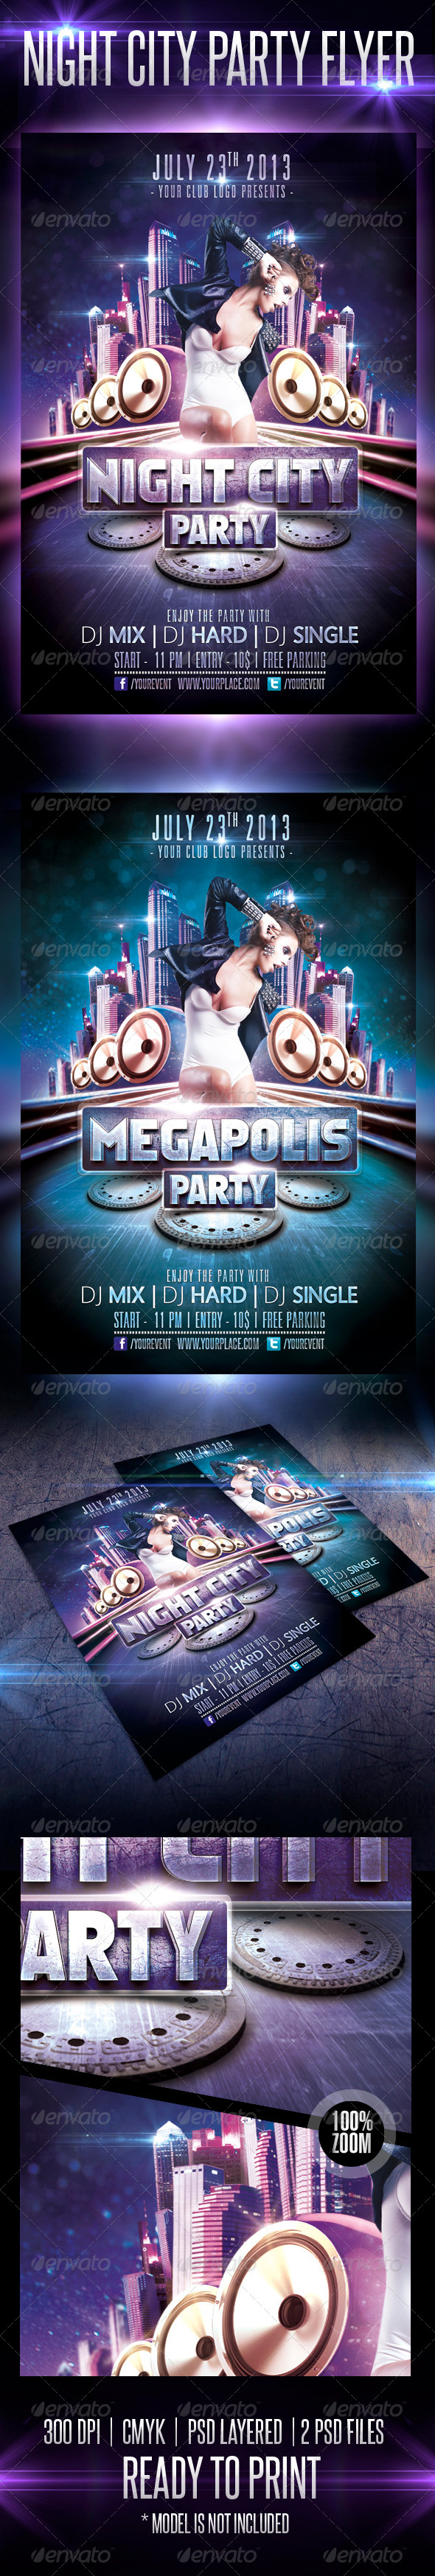 Night City Party Flyer Template - Clubs & Parties Events